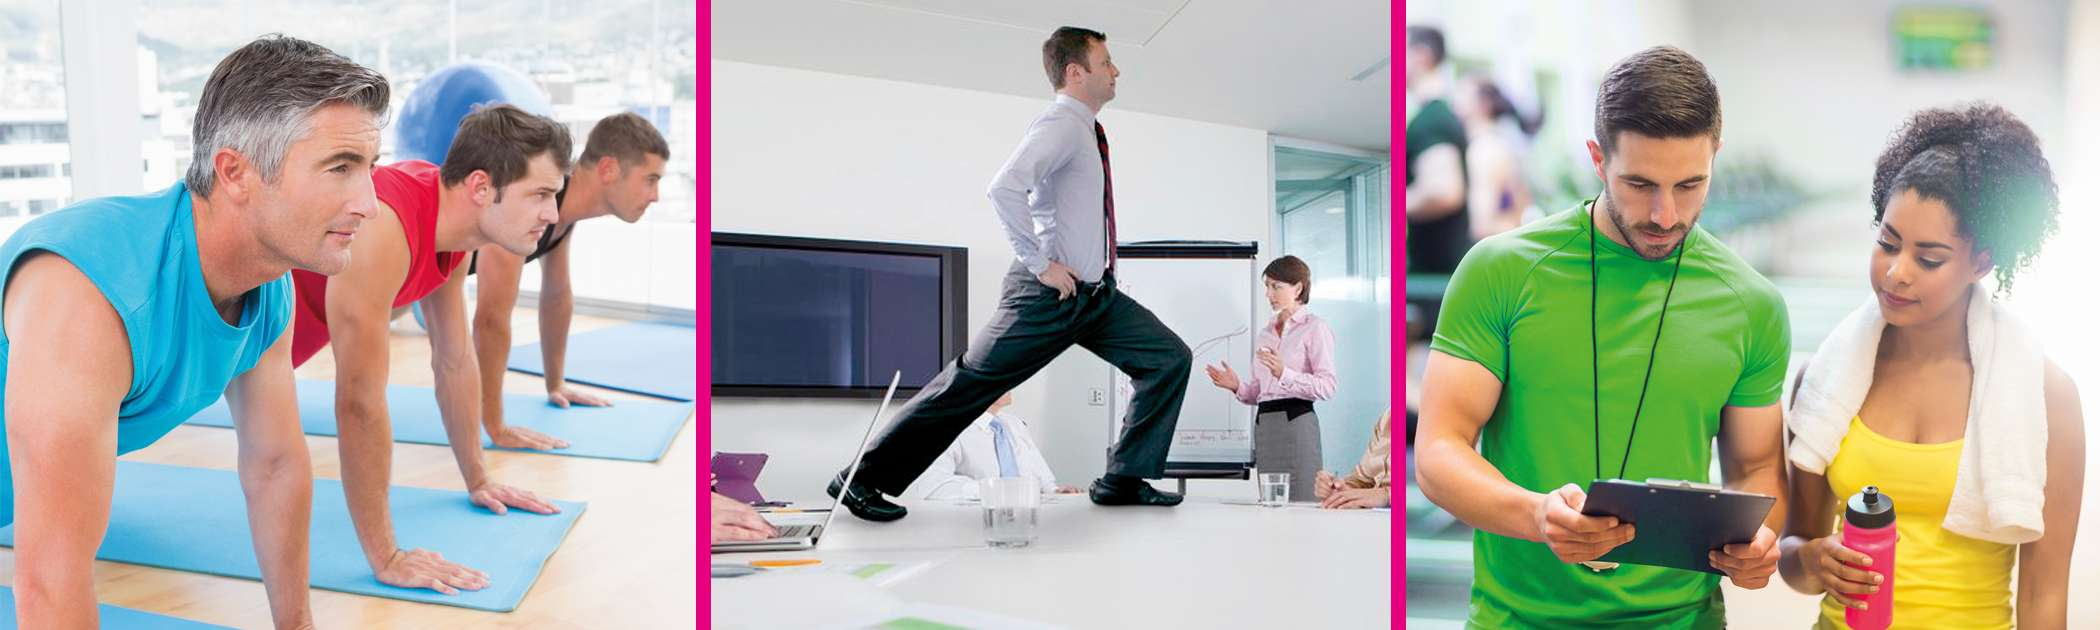 Office Health and Fitness Activities